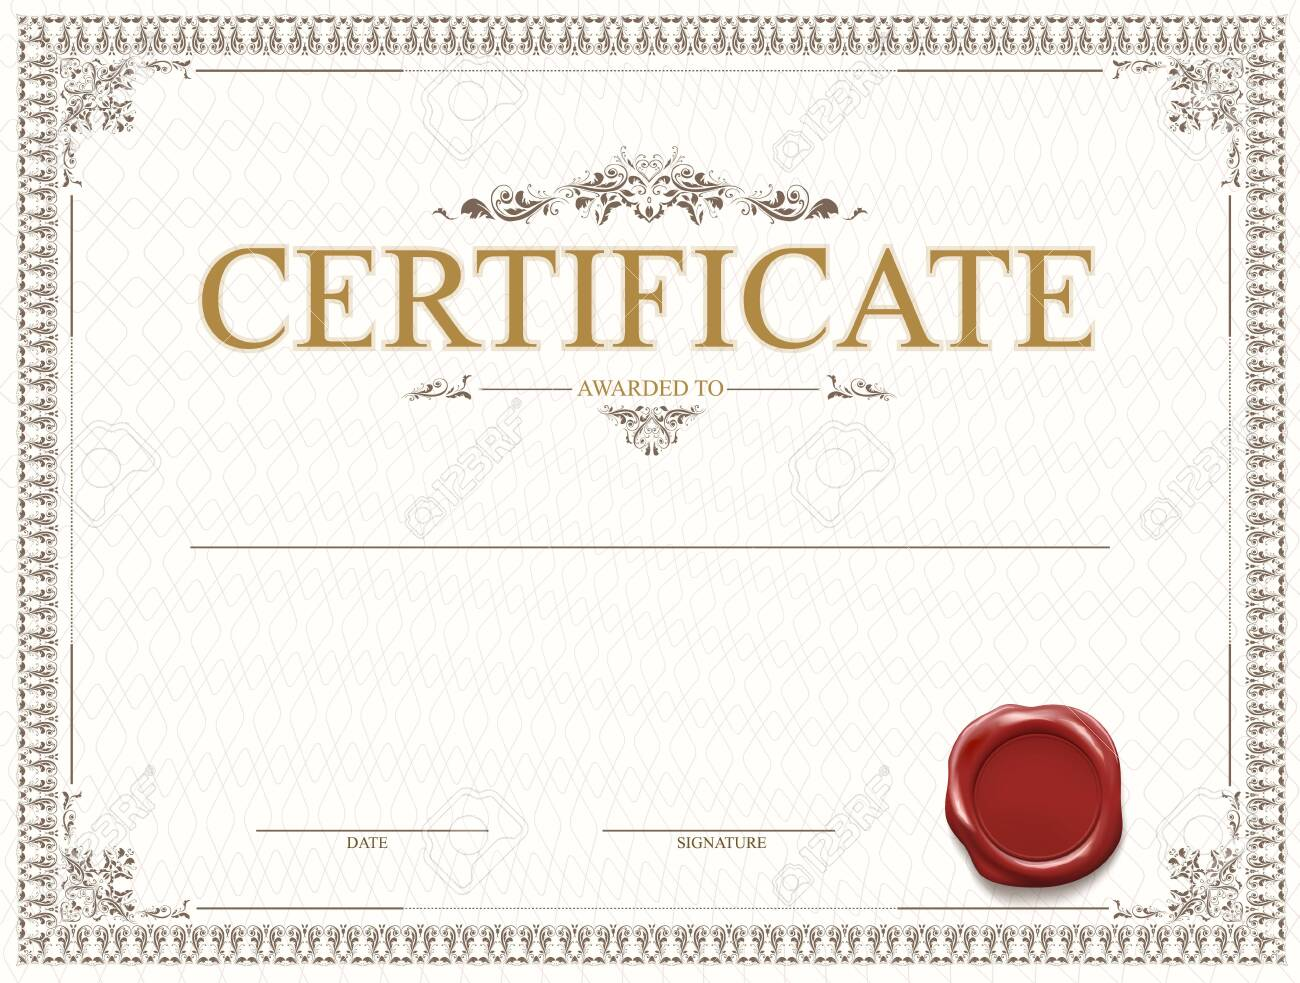 Certificate or diploma template design with seal and watermark. Vector illustration. - 122695287